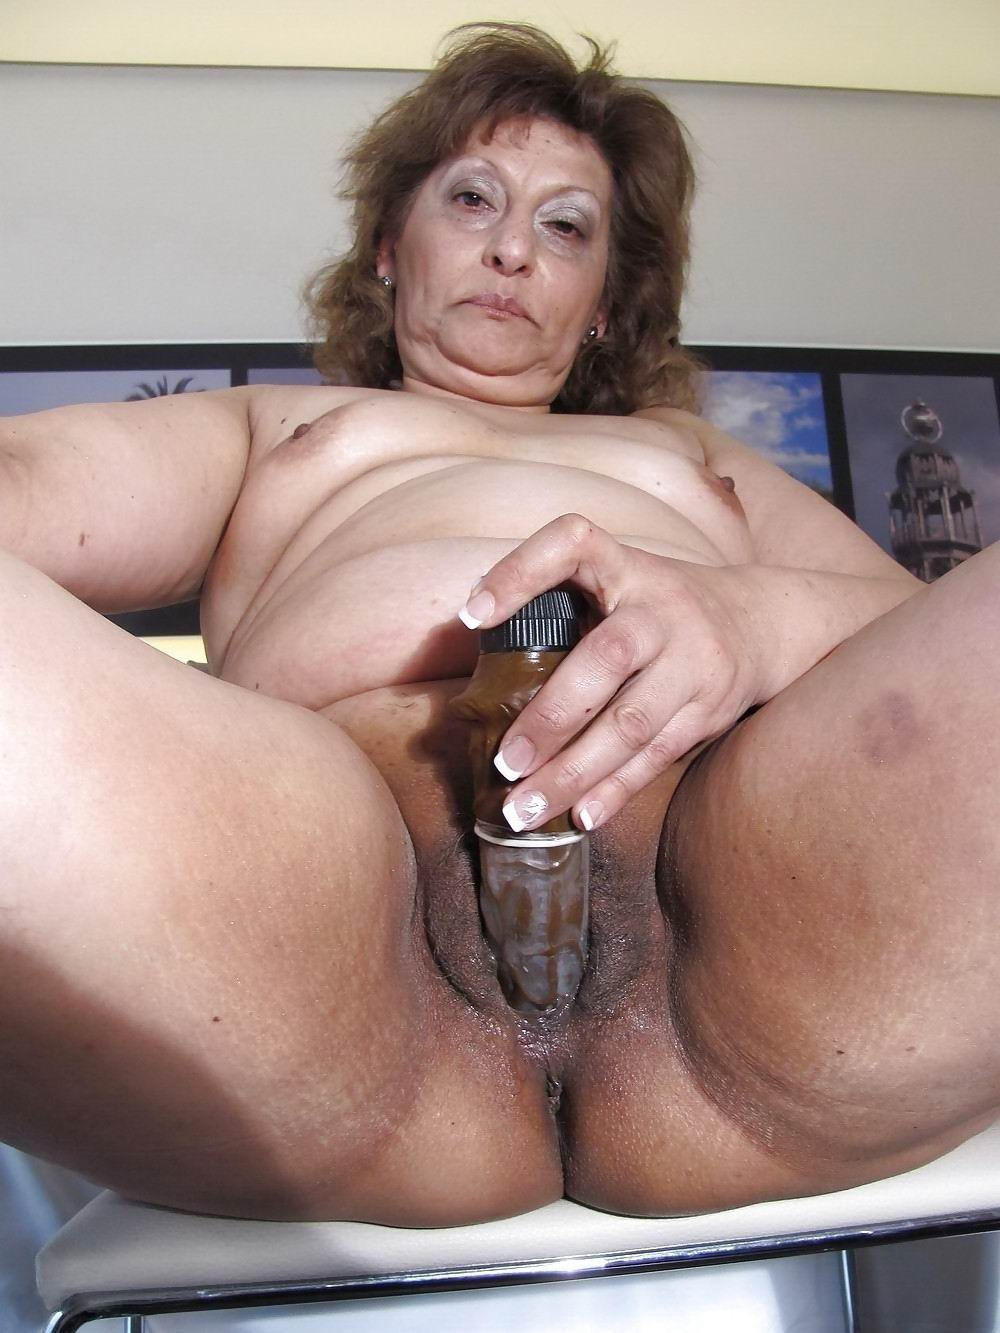 Seems Dirty granny slut join